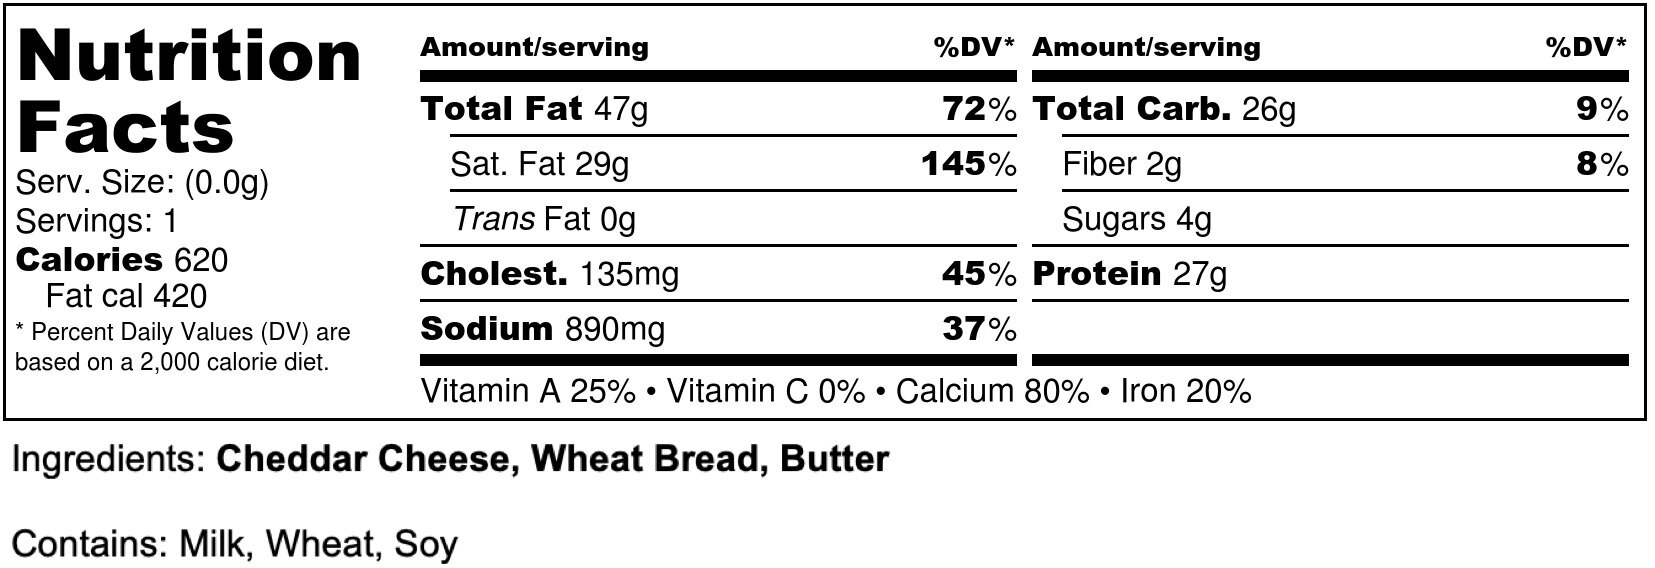 SL Grilled Cheese - Nutrition Label.jpg